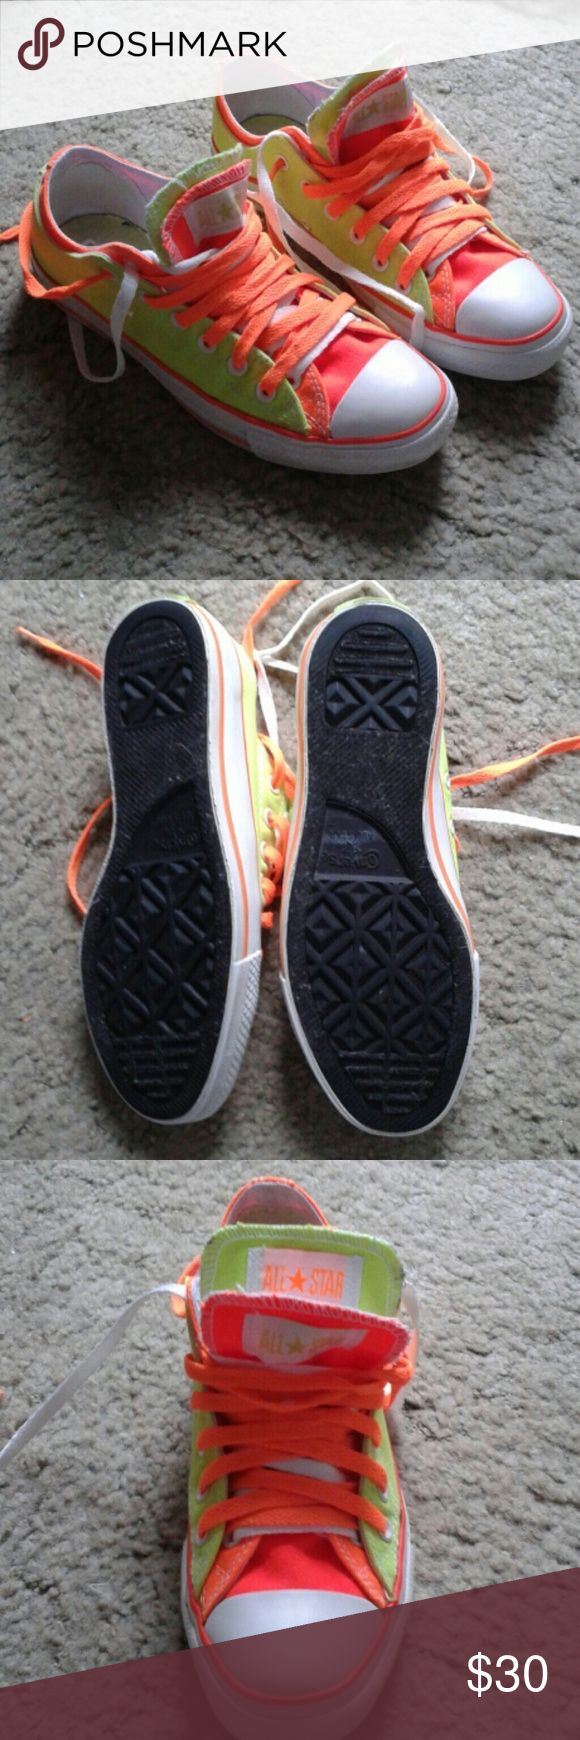 Neon Converse All Stars Bright orange/green neon. Double tongued. Good condition. Womens sz 9 or mens 7. Made in China Converse Shoes Sneakers